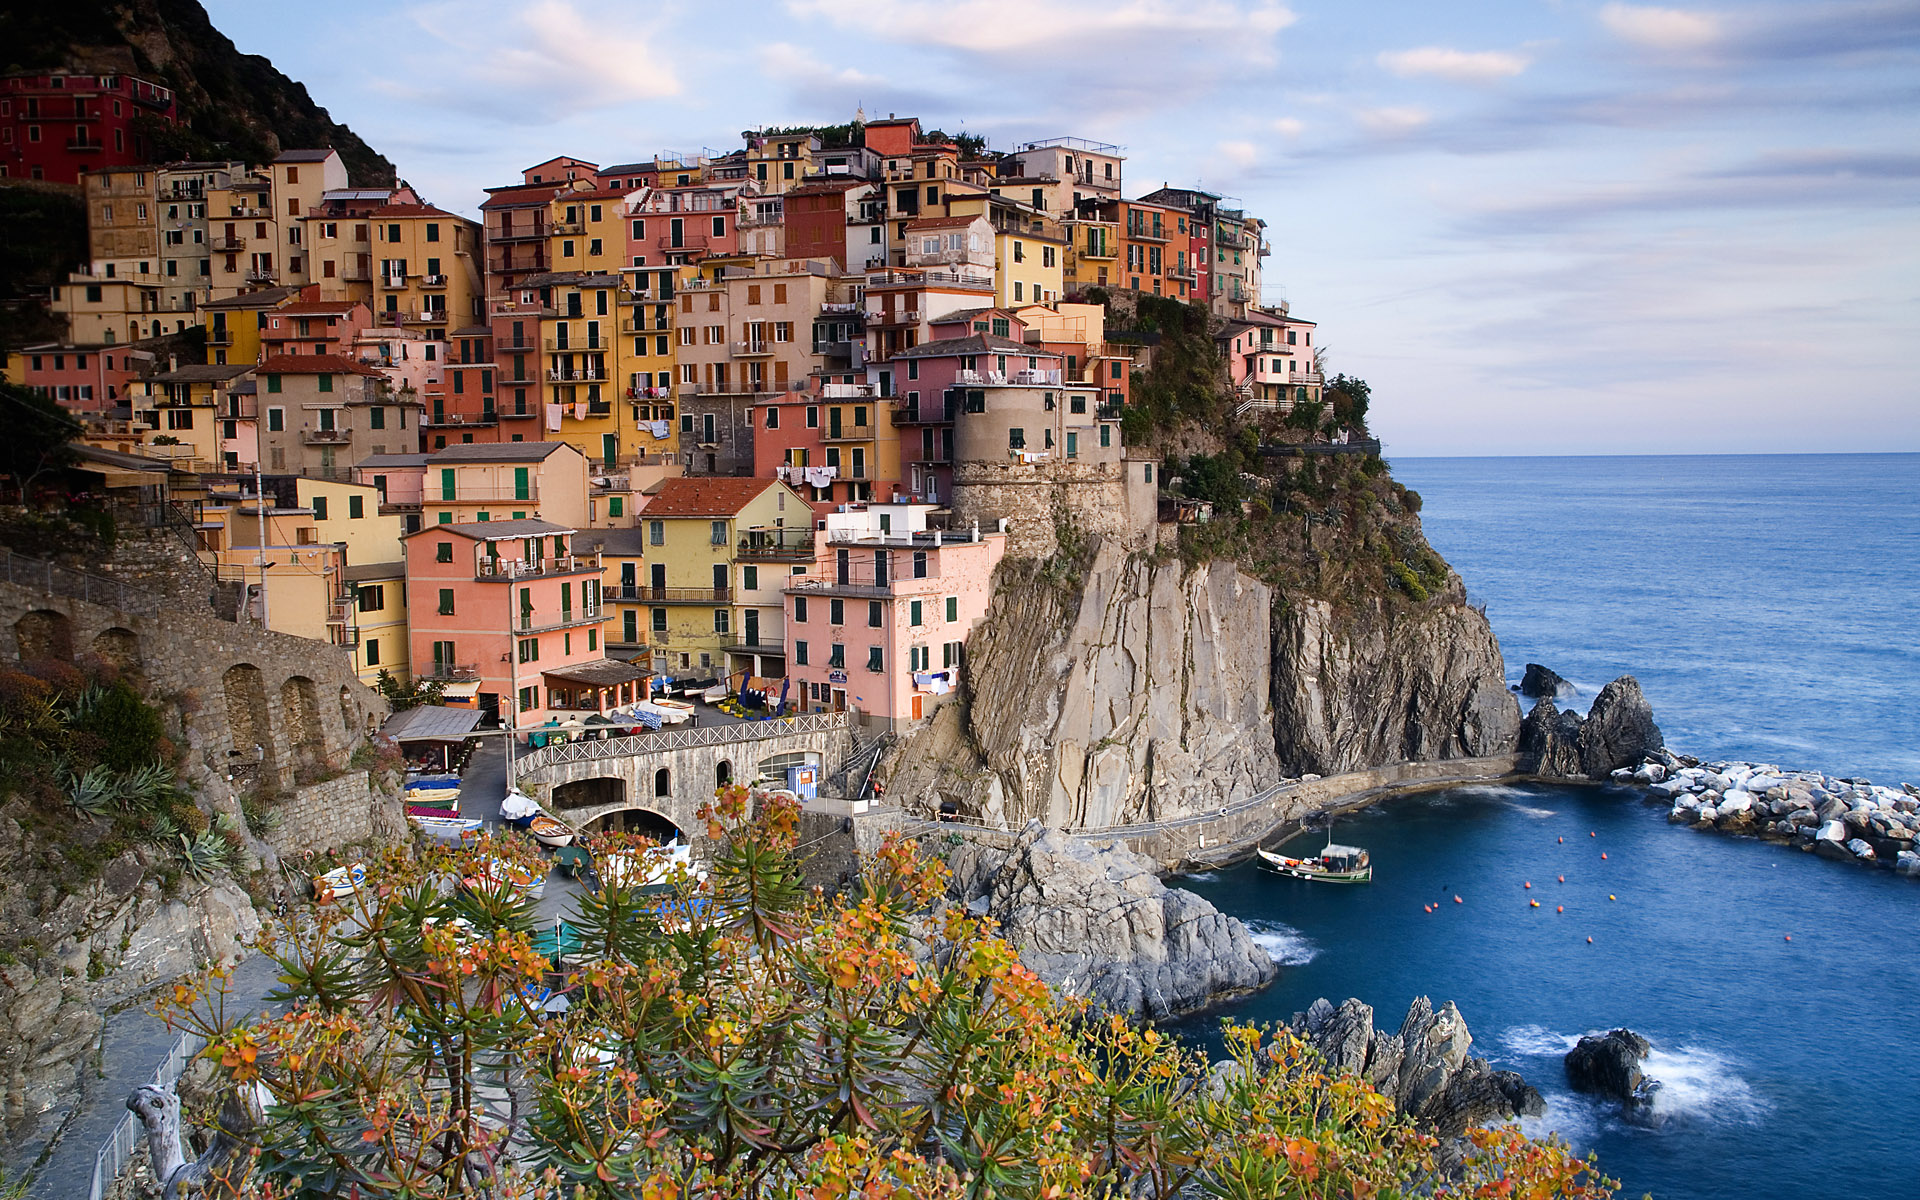 wallpapers regional screensaver wallpaper windows italy stunning 1920x1200